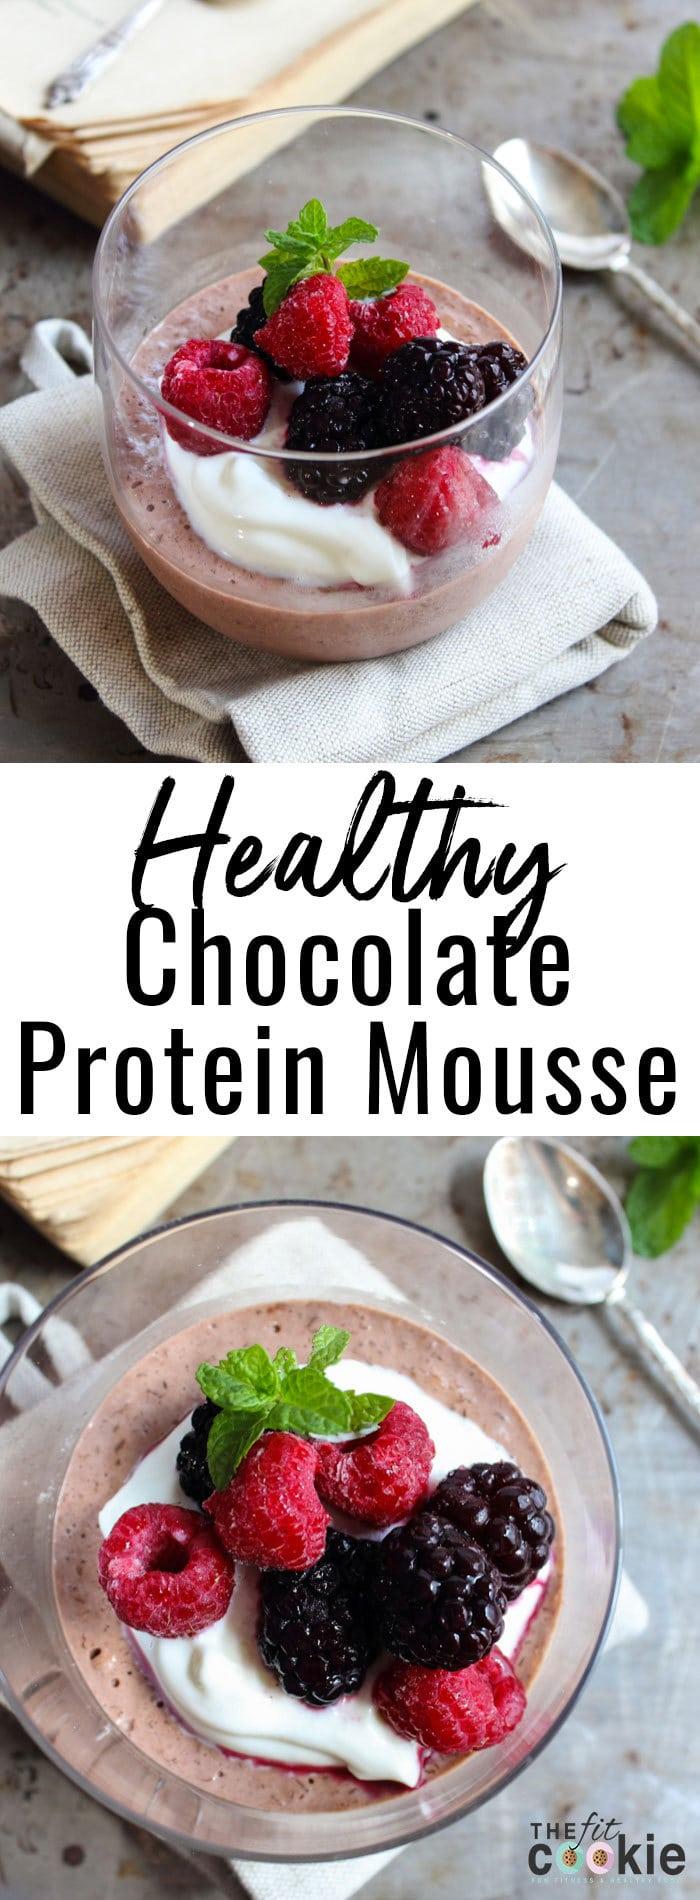 Healthy Chocolate Protein Mousse: creamy, non-dairy chocolate mousse that you can fully indulge in without the guilt! Perfect for a healthier dessert or snack - @TheFitCookie #glutenfree #dairyfree #vegan